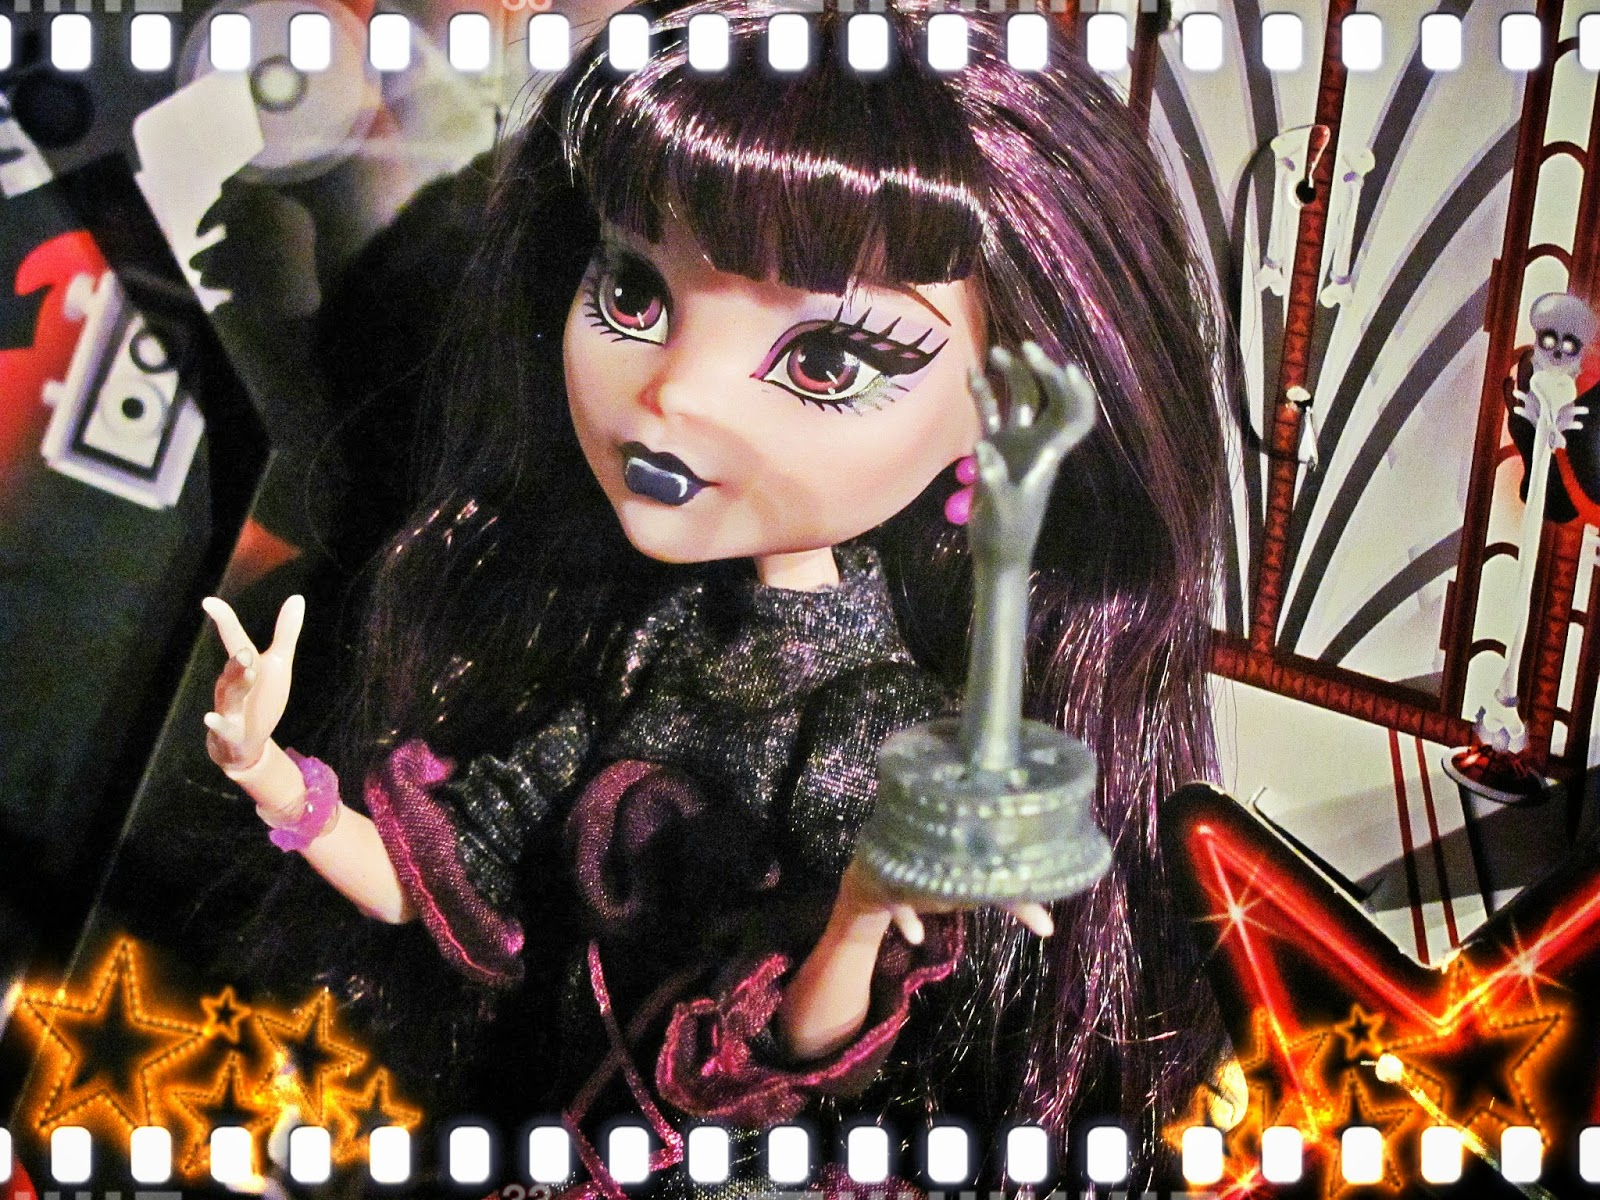 Monster high Frights camera action elissabat doll review ...